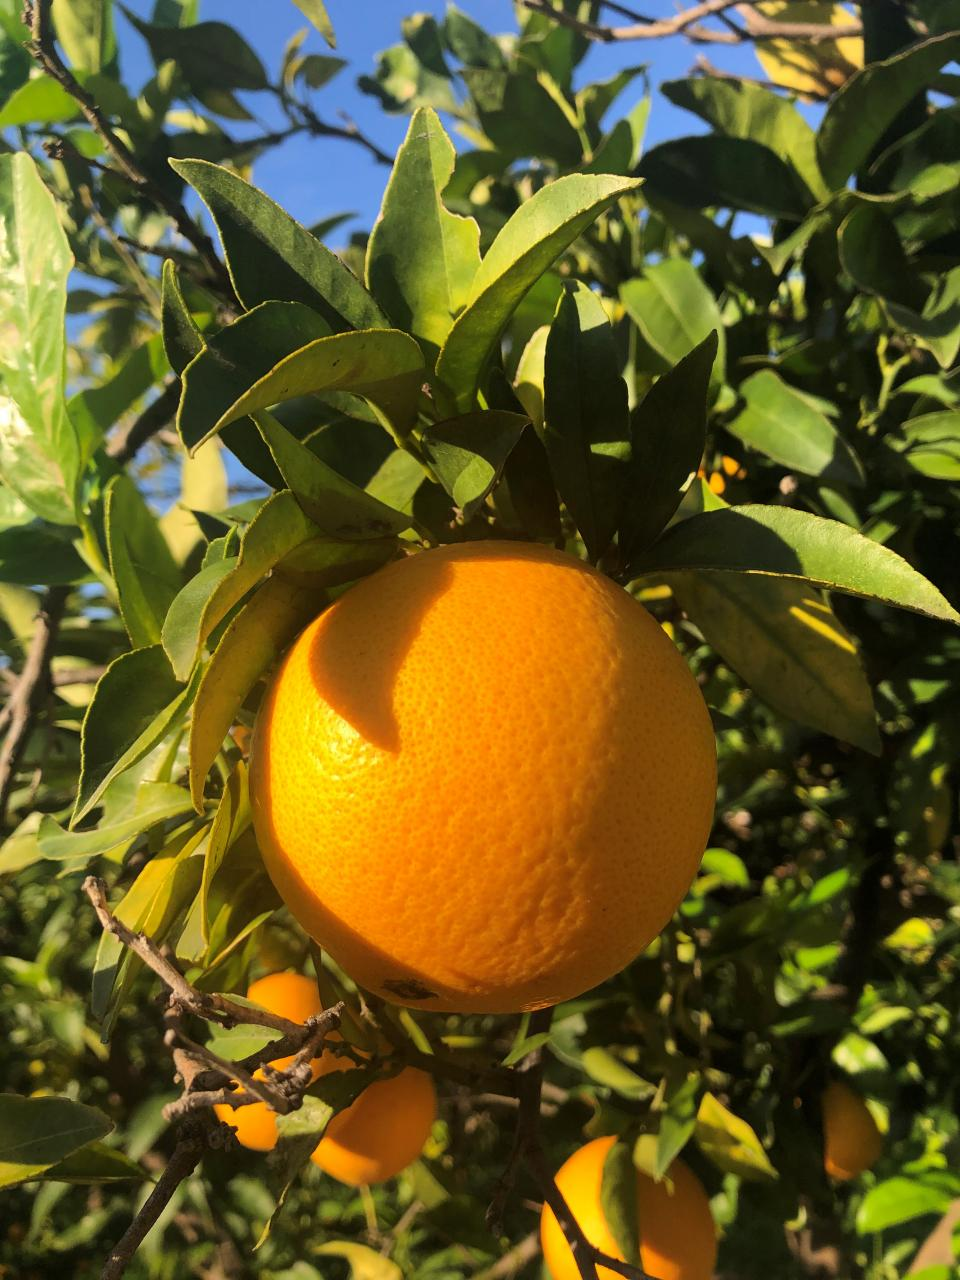 Soller oranges for your stocking